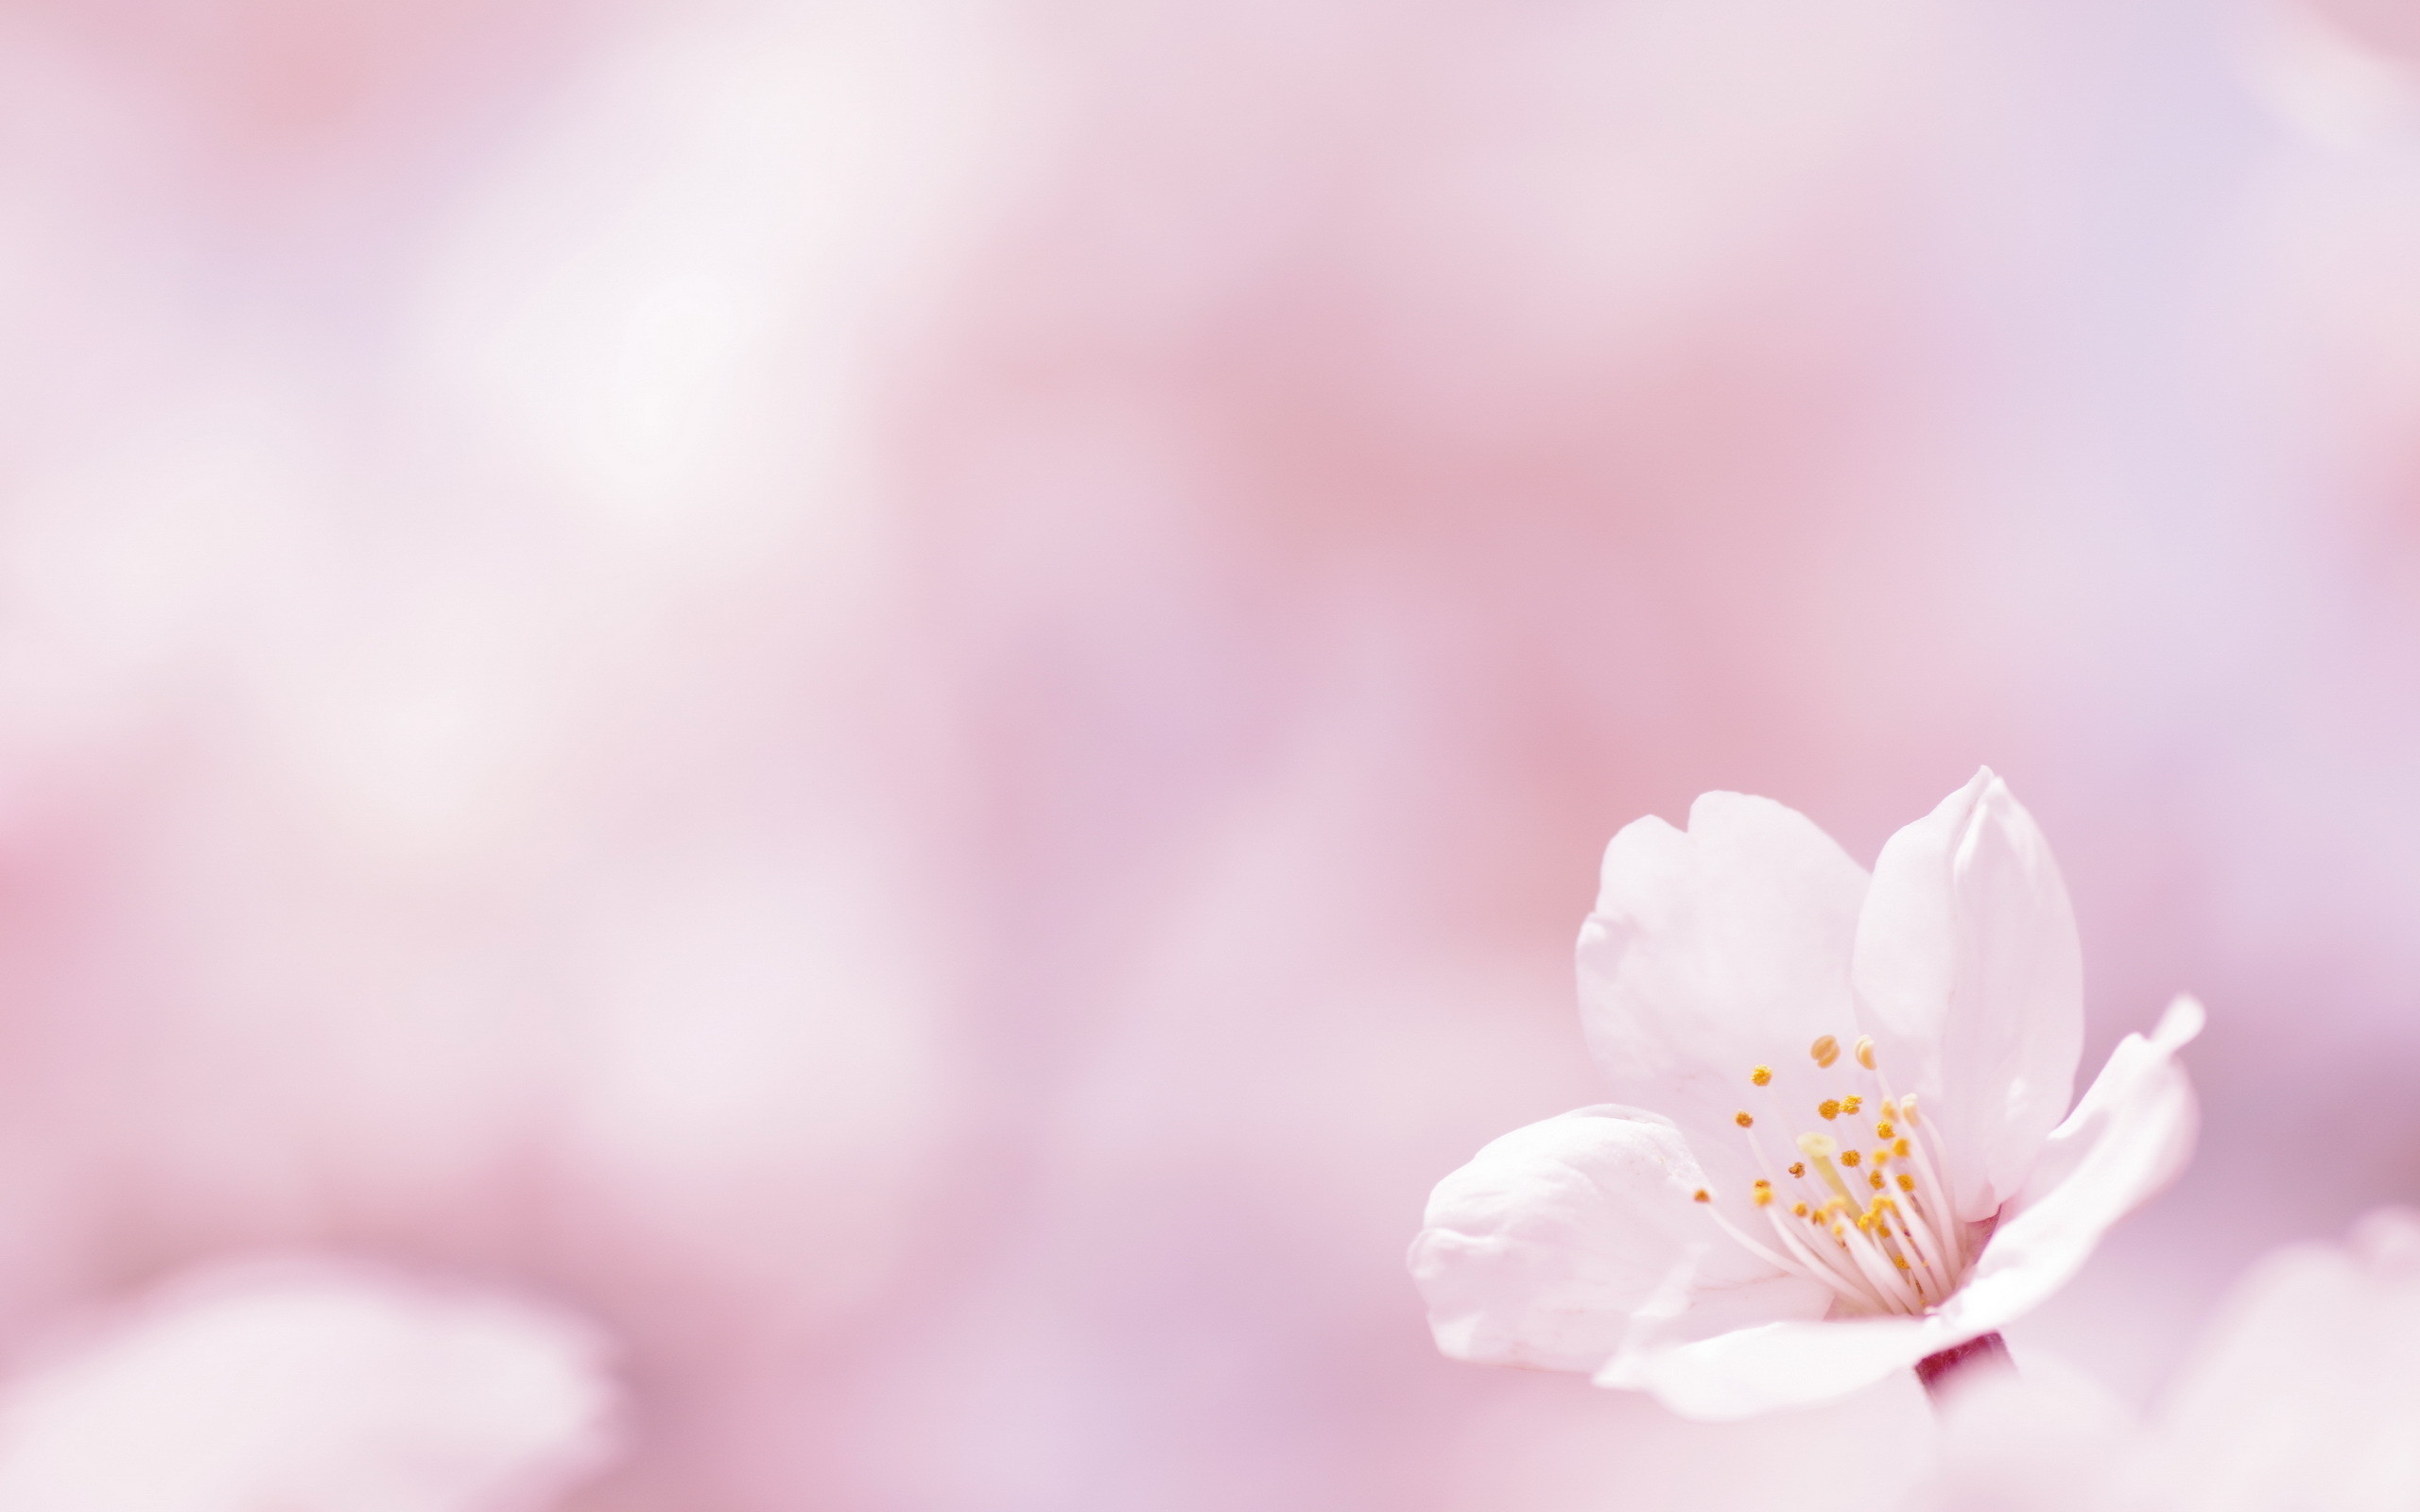 pink flower wallpapers ·①